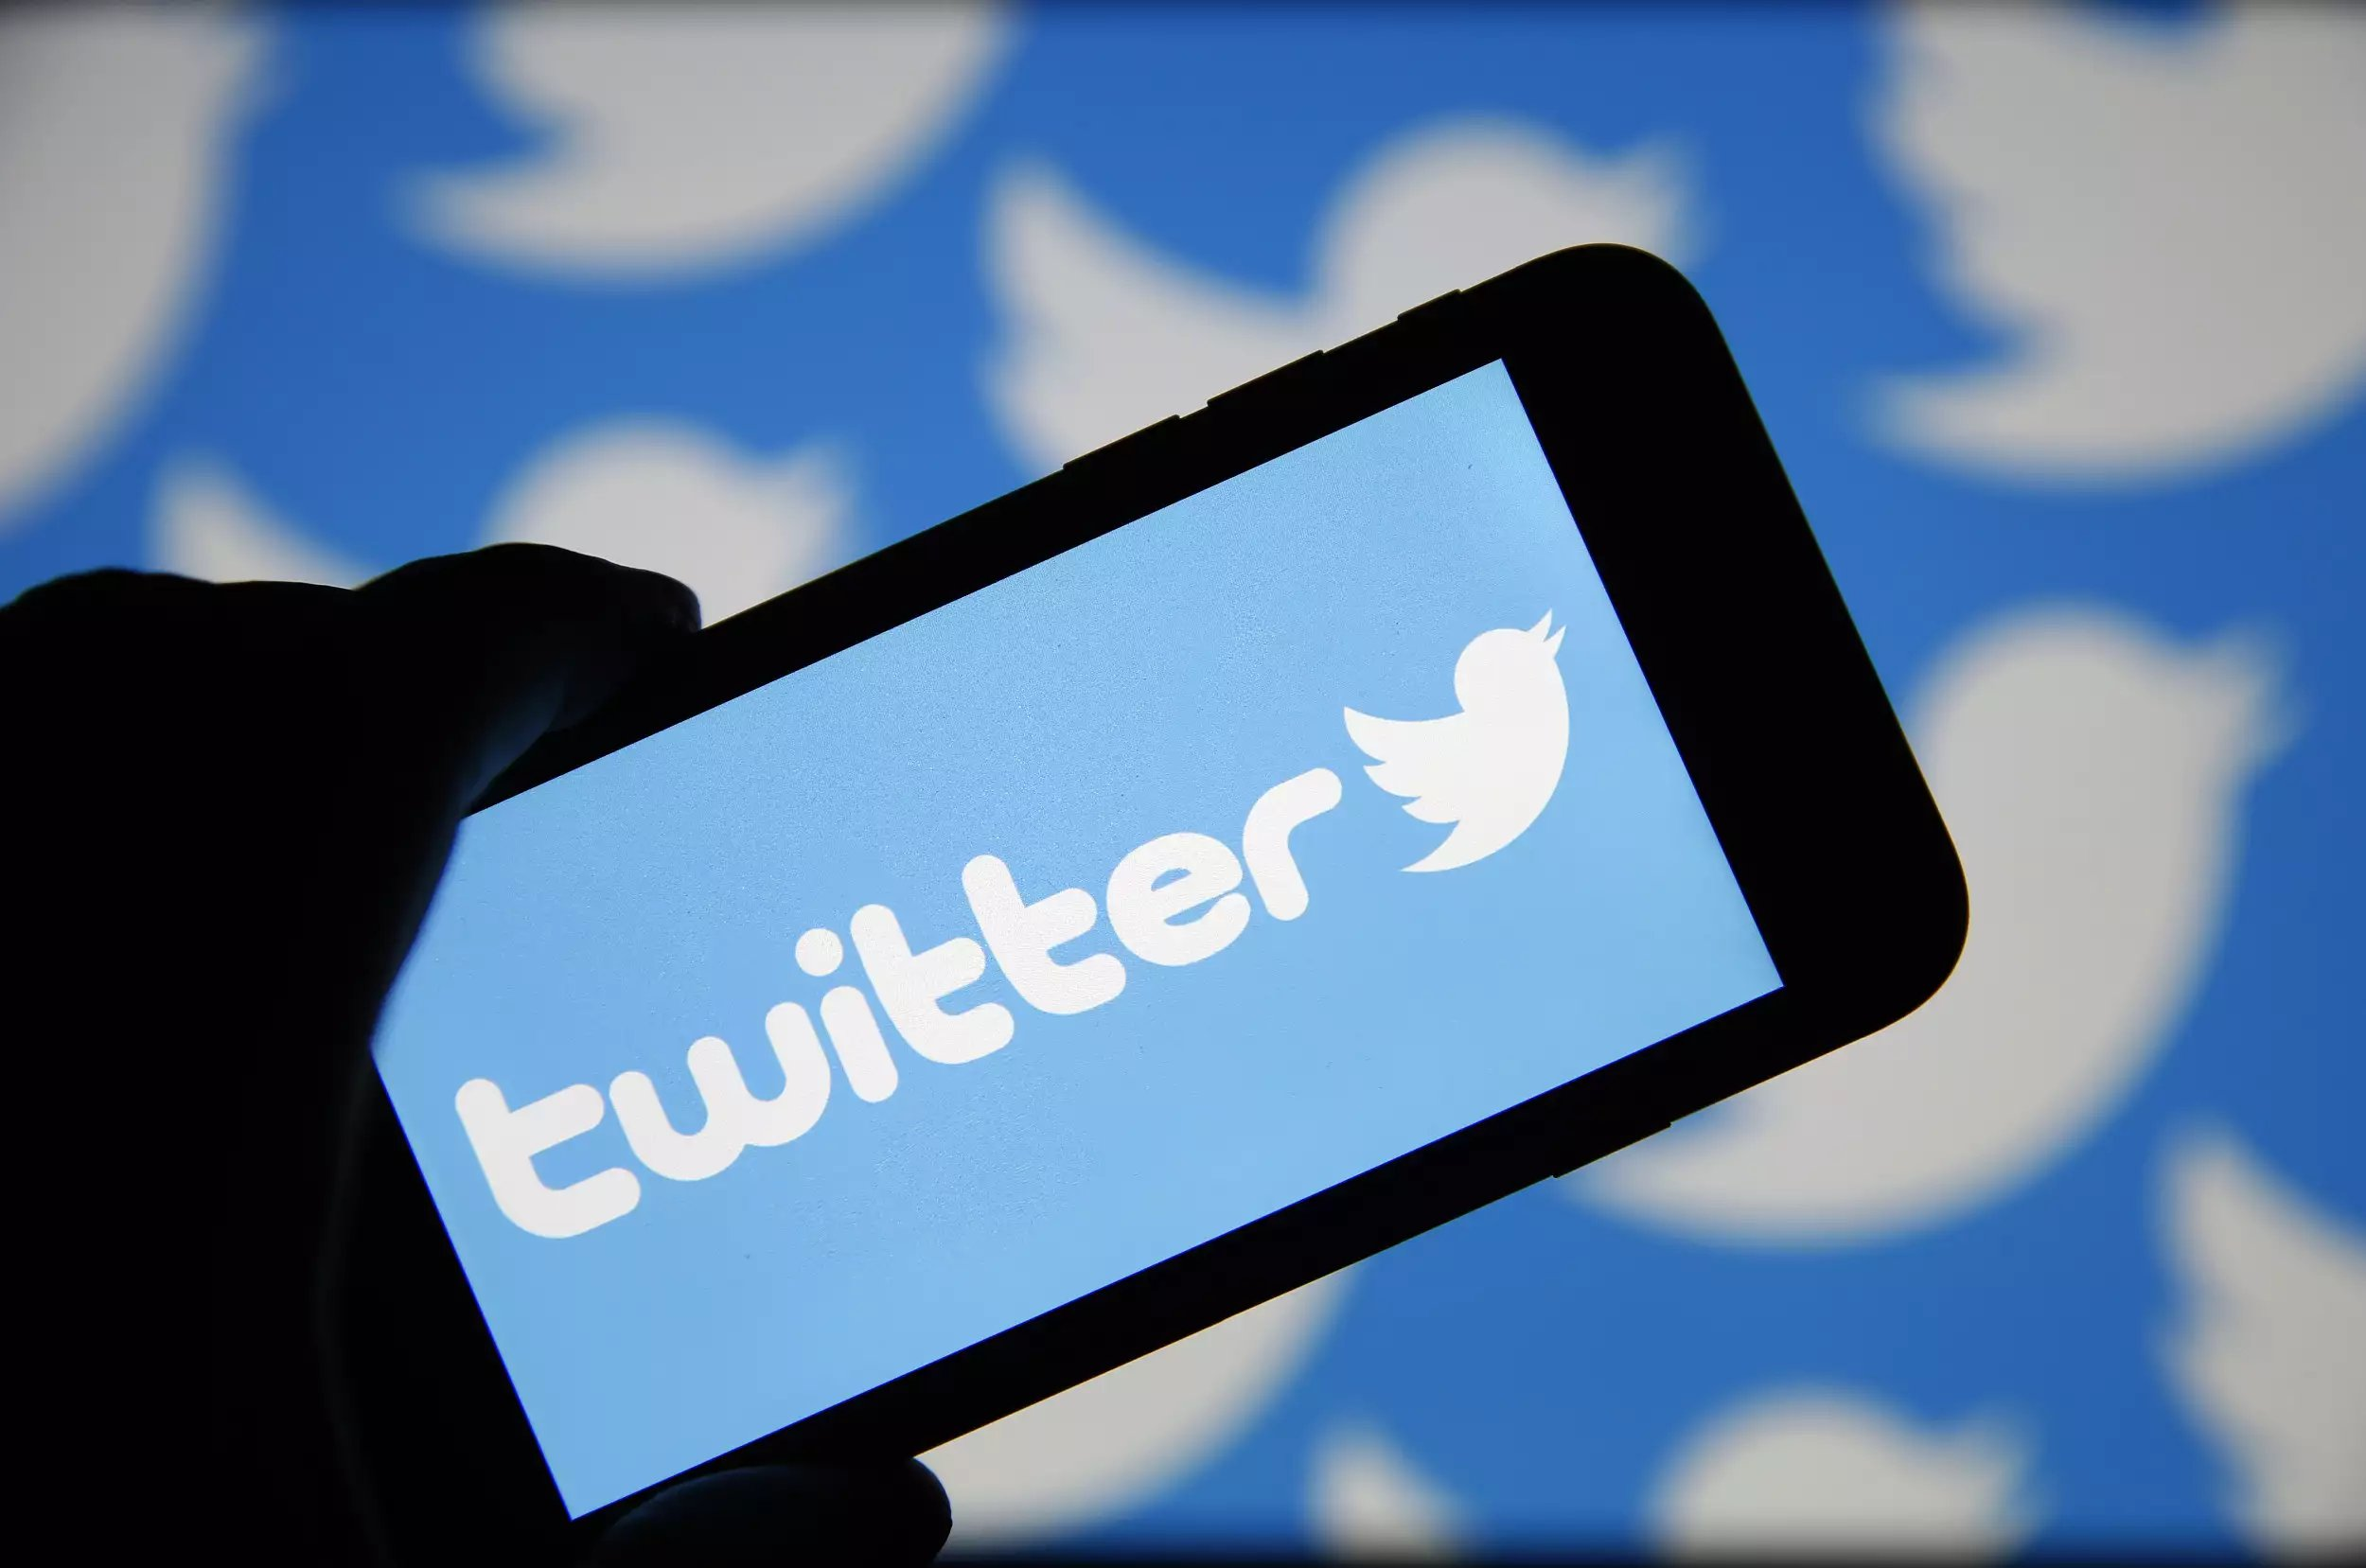 Twitter Users' Phone Numbers Used For Ad Targetting